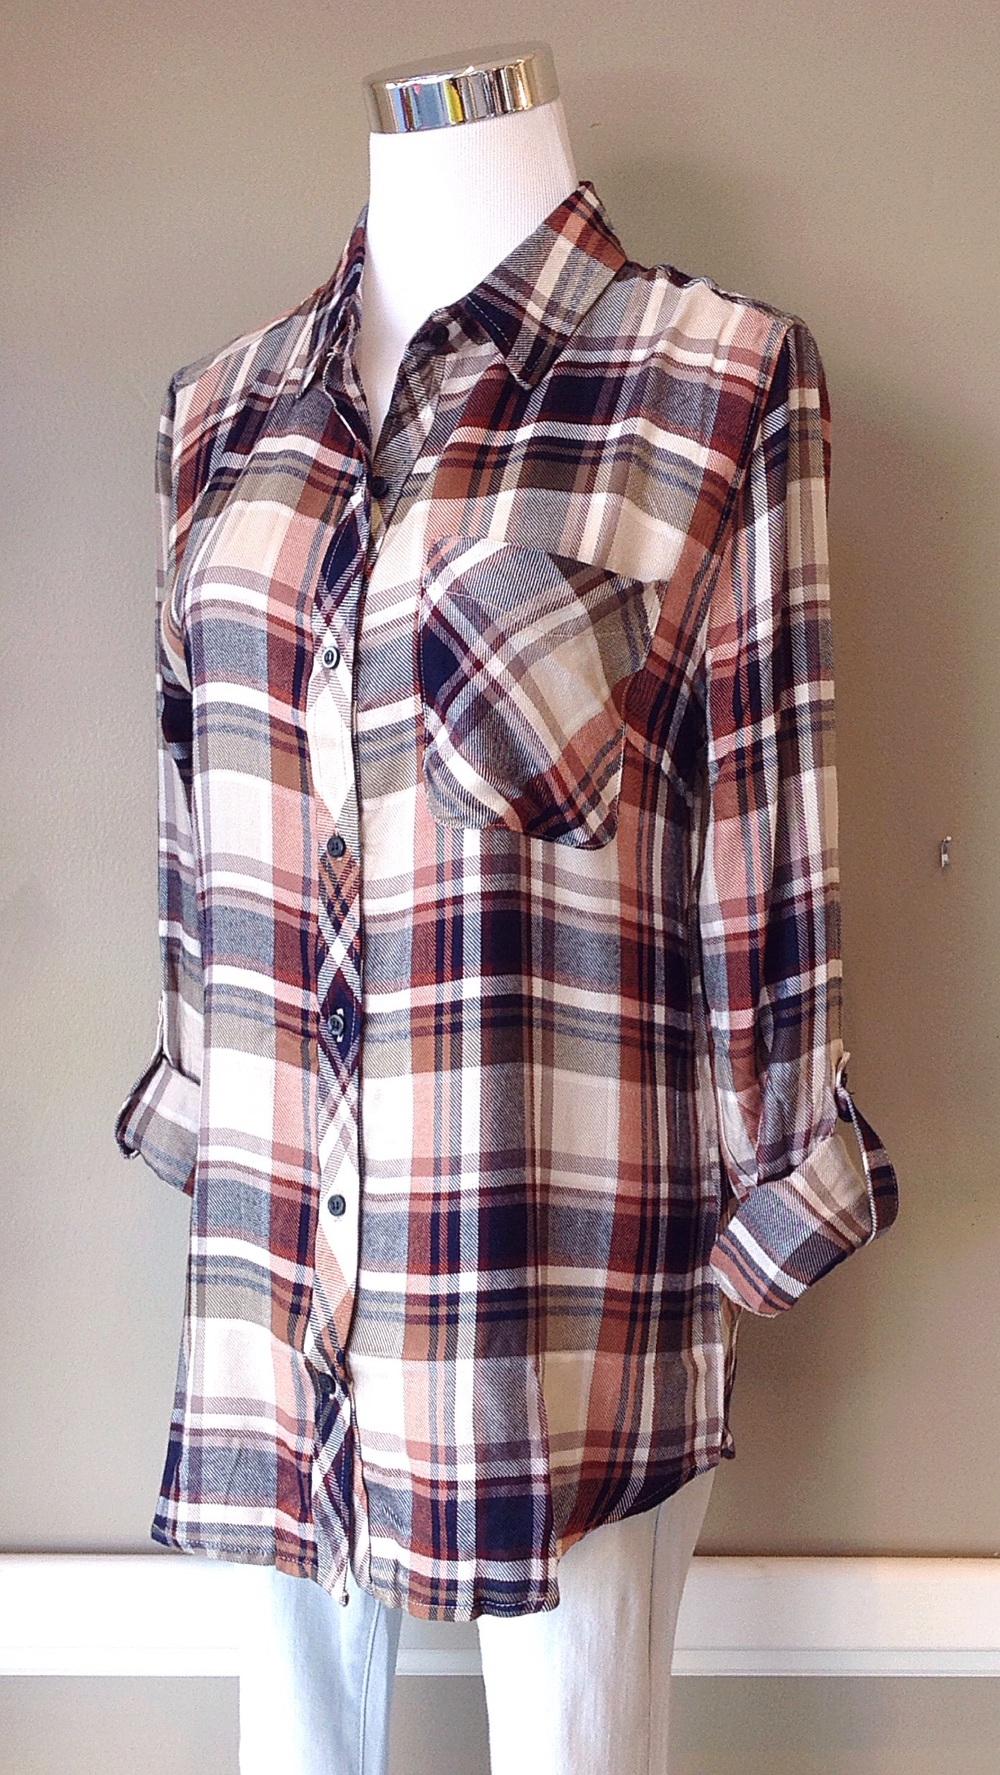 Rayon plaid button-down in ivory/navy/olive, $34